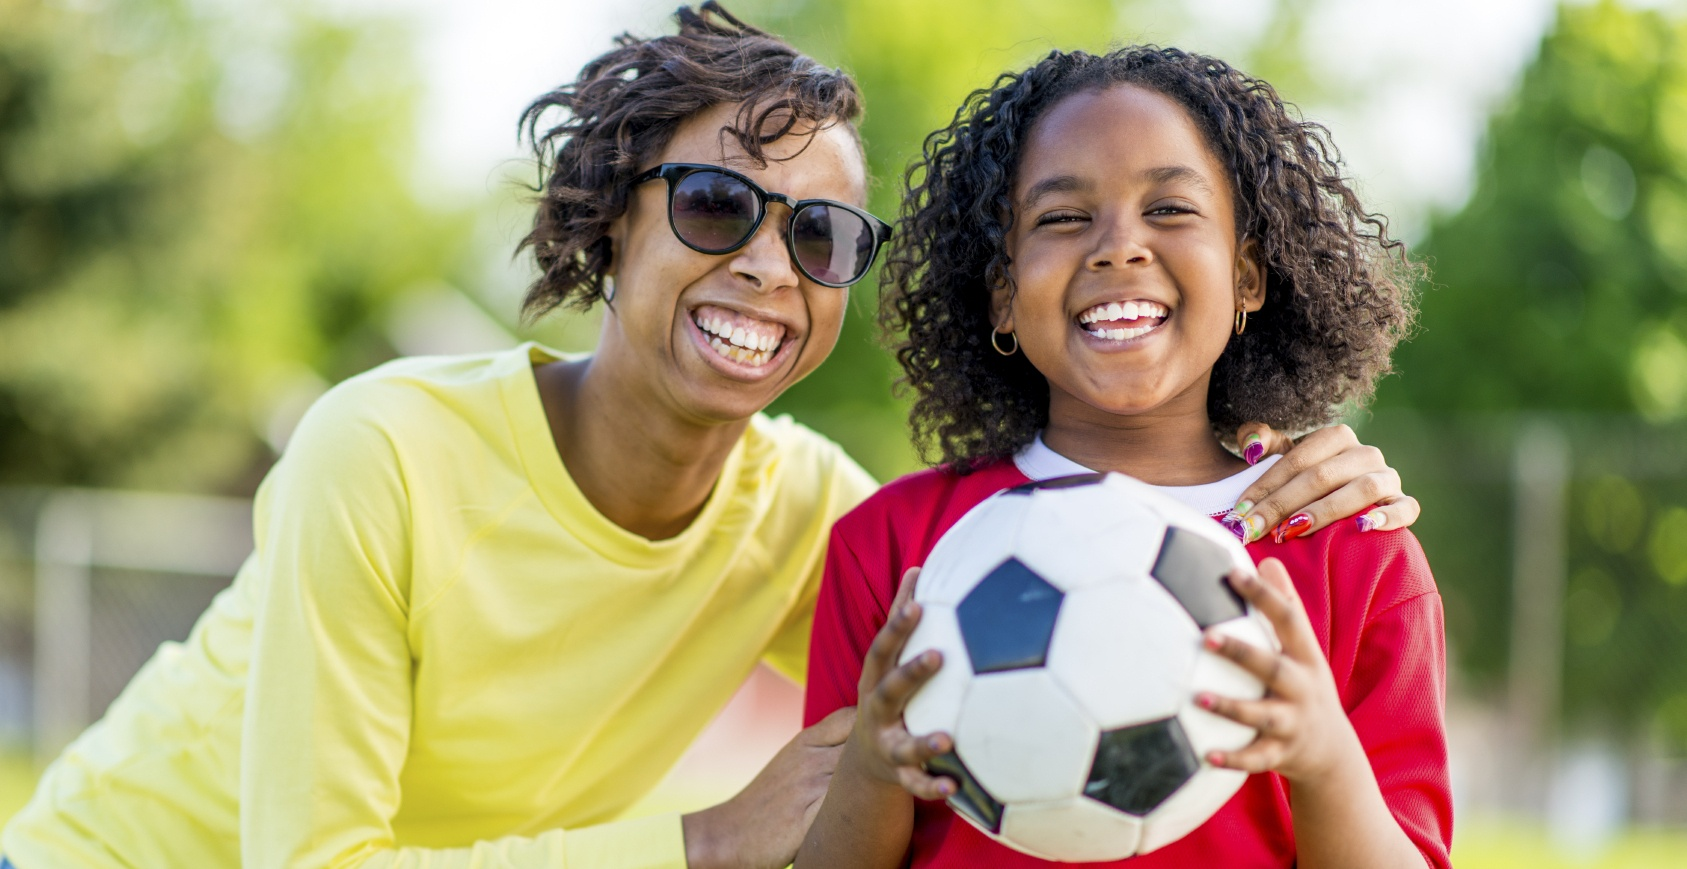 Mom and daughter at soccer